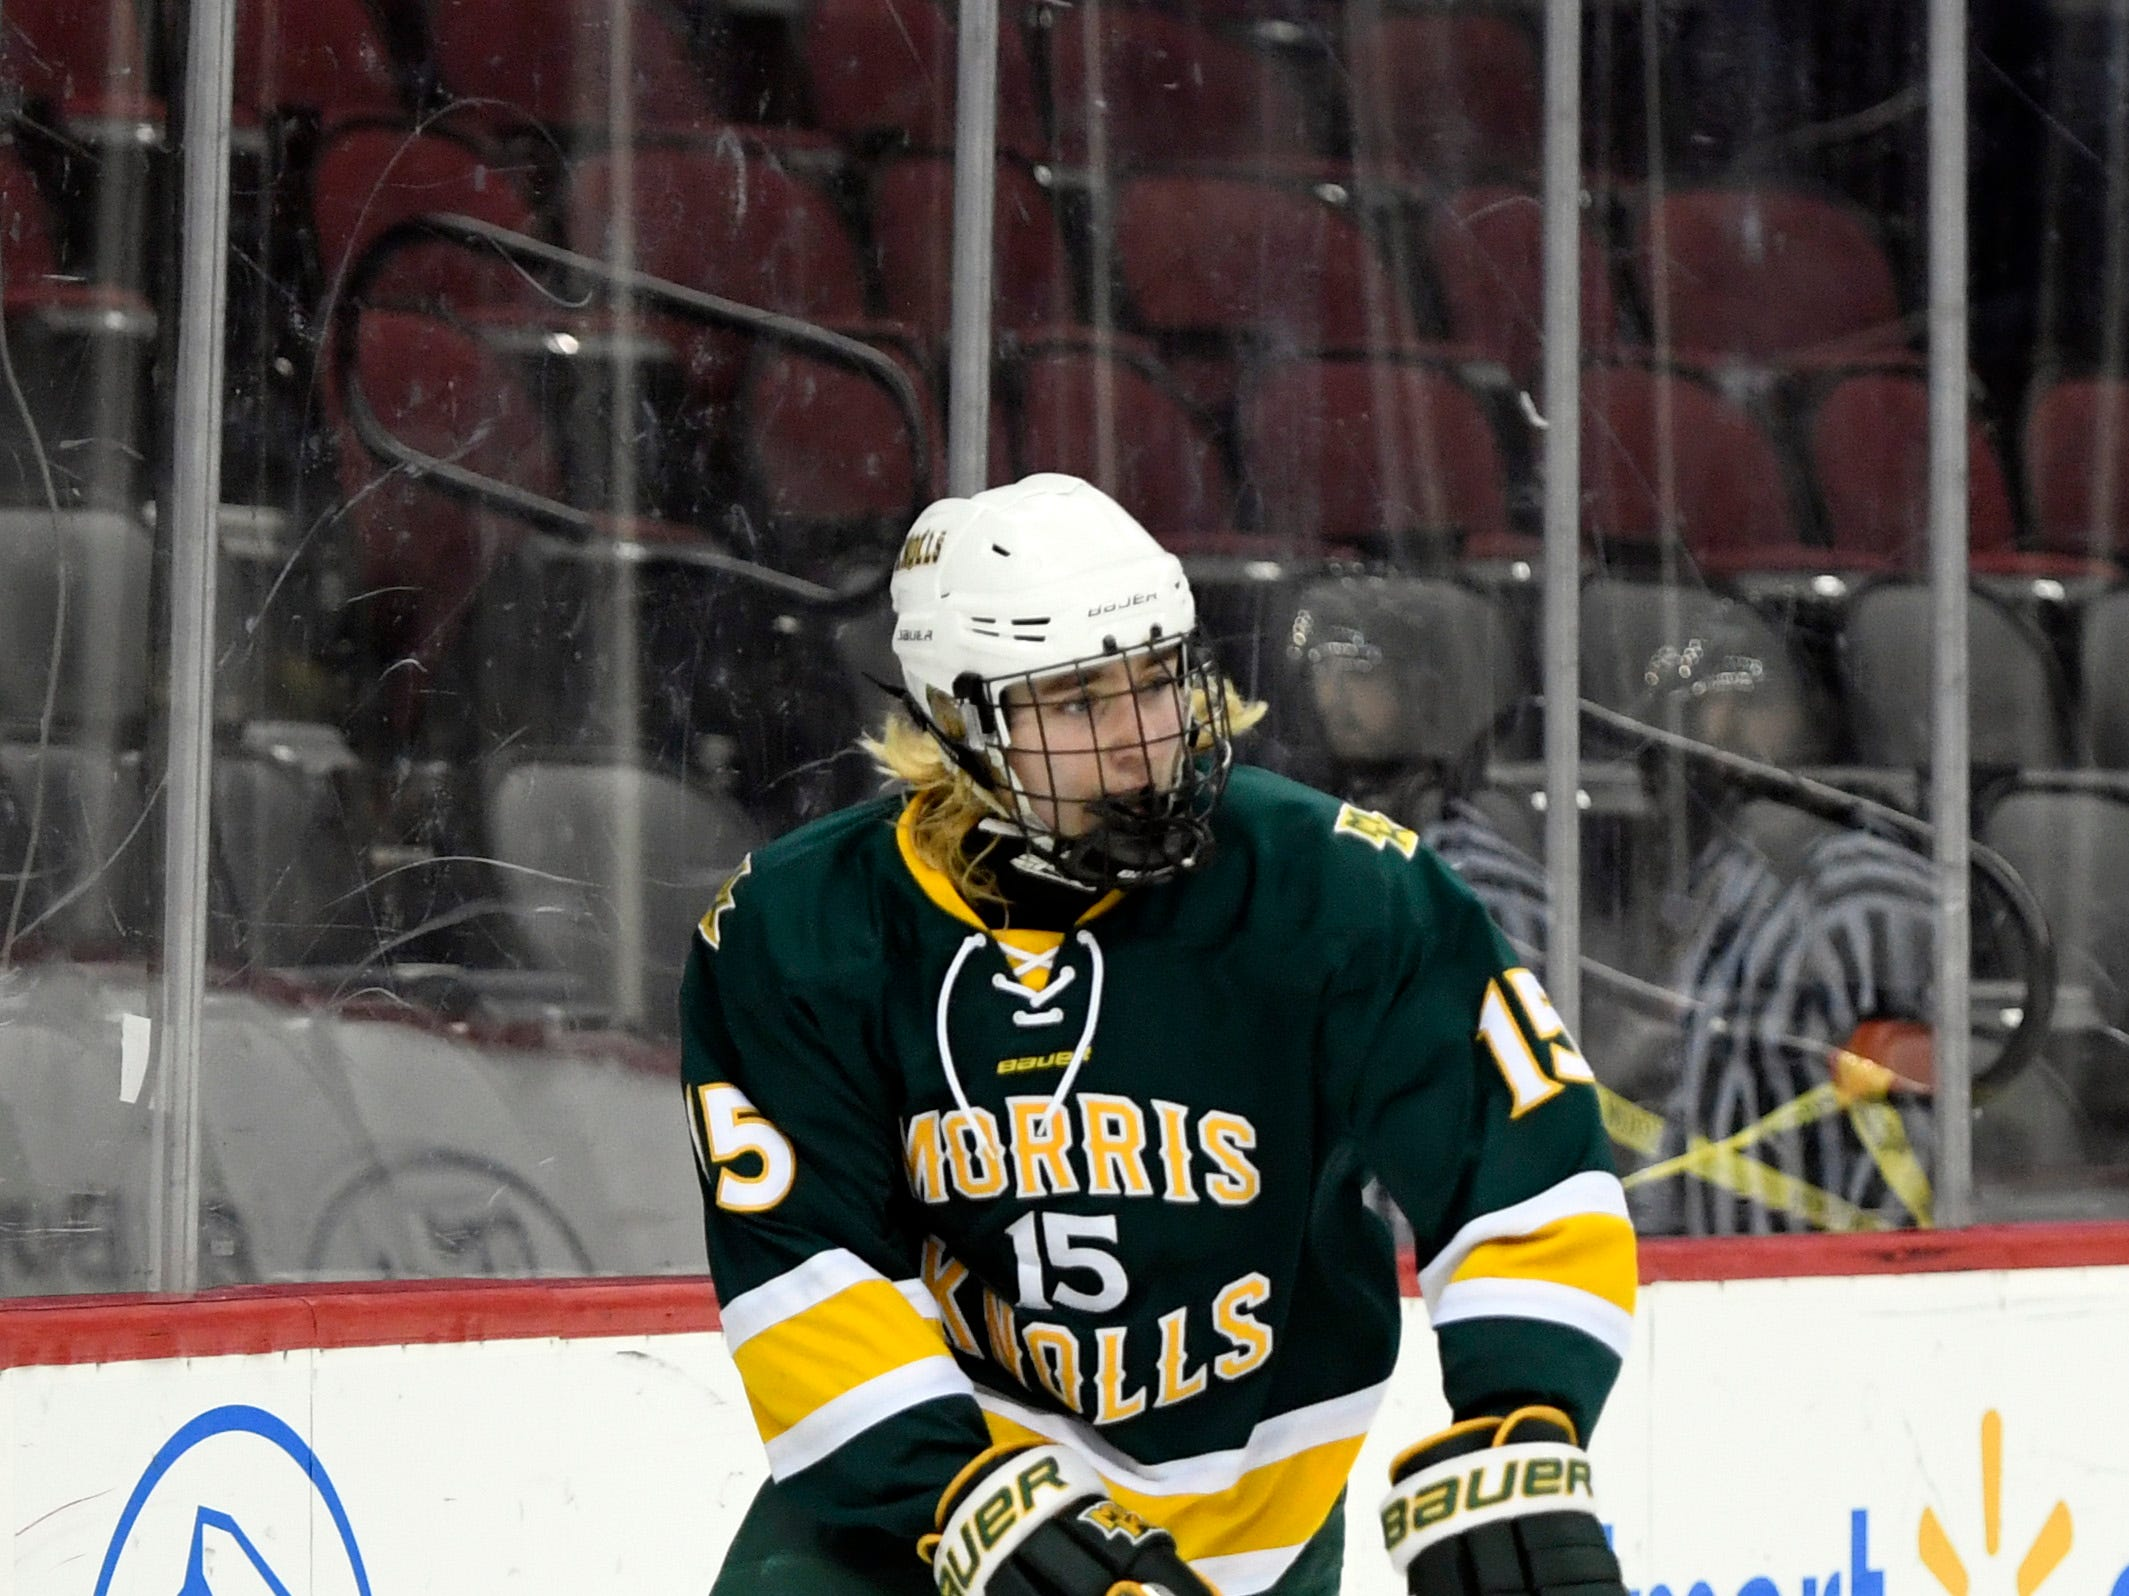 Morris Knolls/Hills' Timmy Kepler (15) in the third period. Morris Knolls/Hills defeats Hillsborough 6-1 in the Public A ice hockey final at the Prudential Center on Monday, March 4, 2019, in Newark.